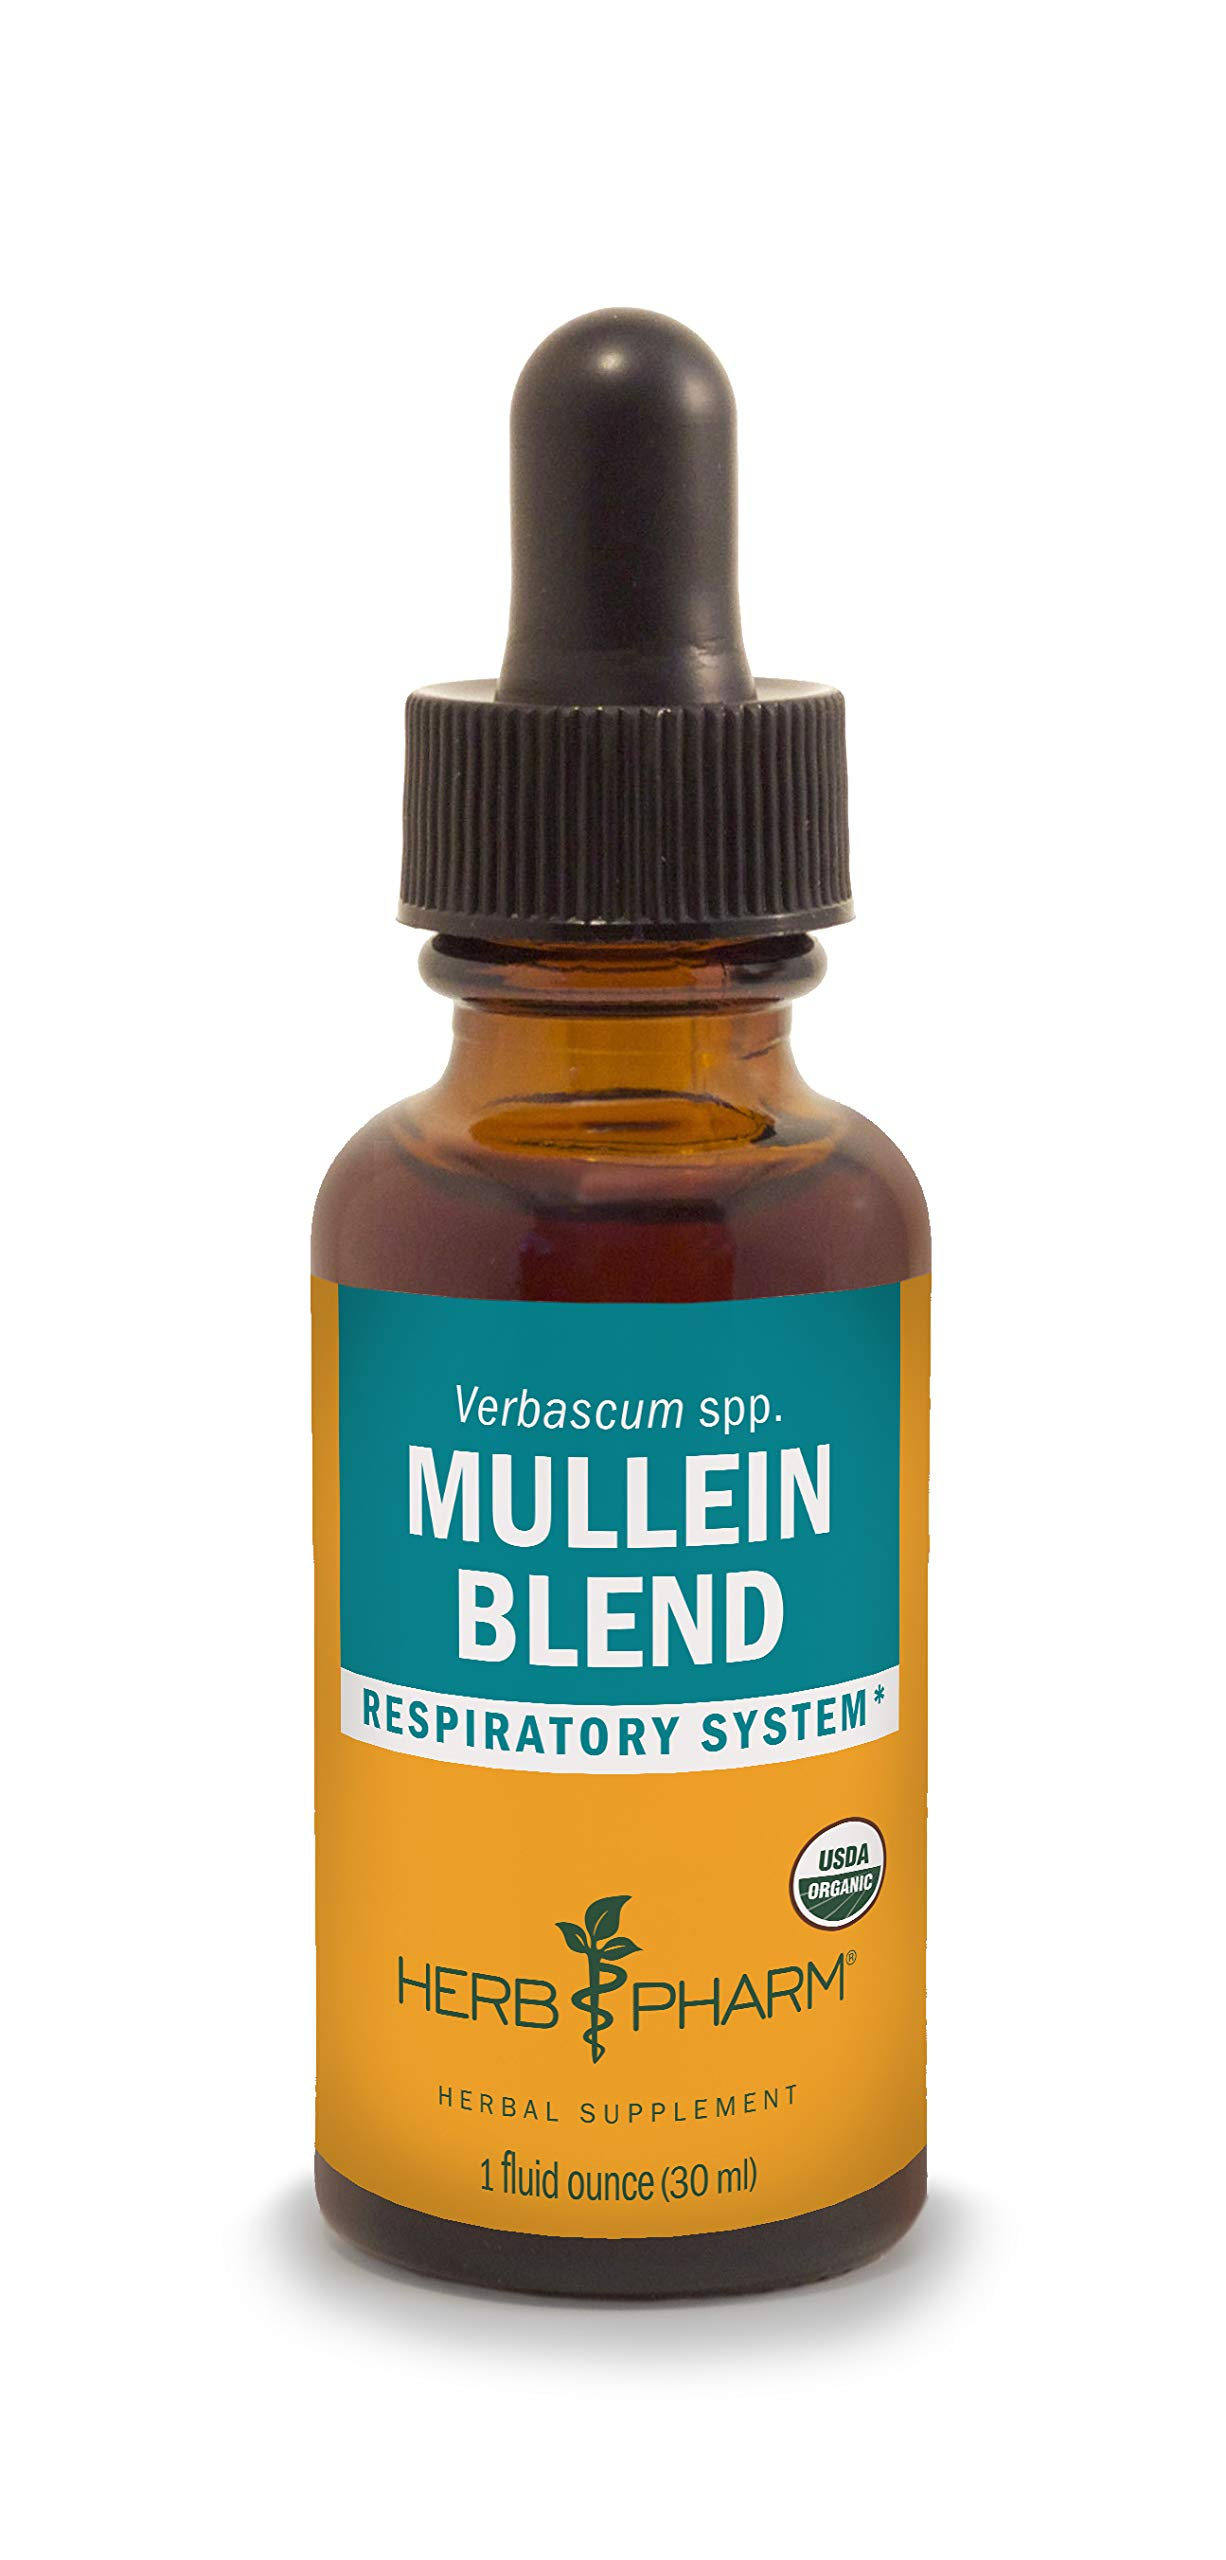 Herb Pharm Certified Organic Mullein Blend Liquid Extract for Respiratory System Support - 1 Ounce